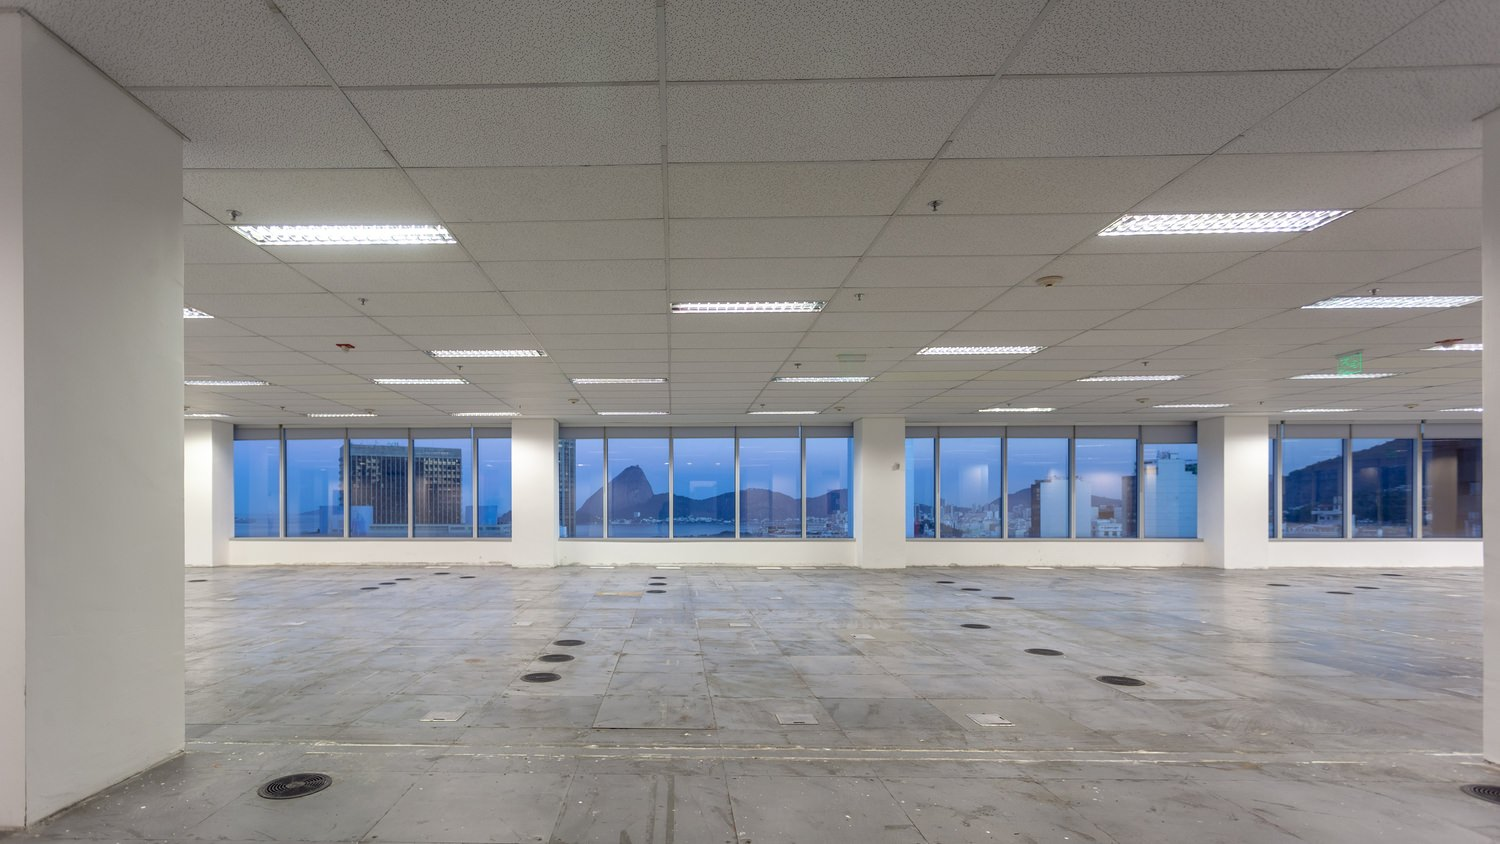 Large empty room with tiled floors and large glass windows that show a view of the vity in the background.